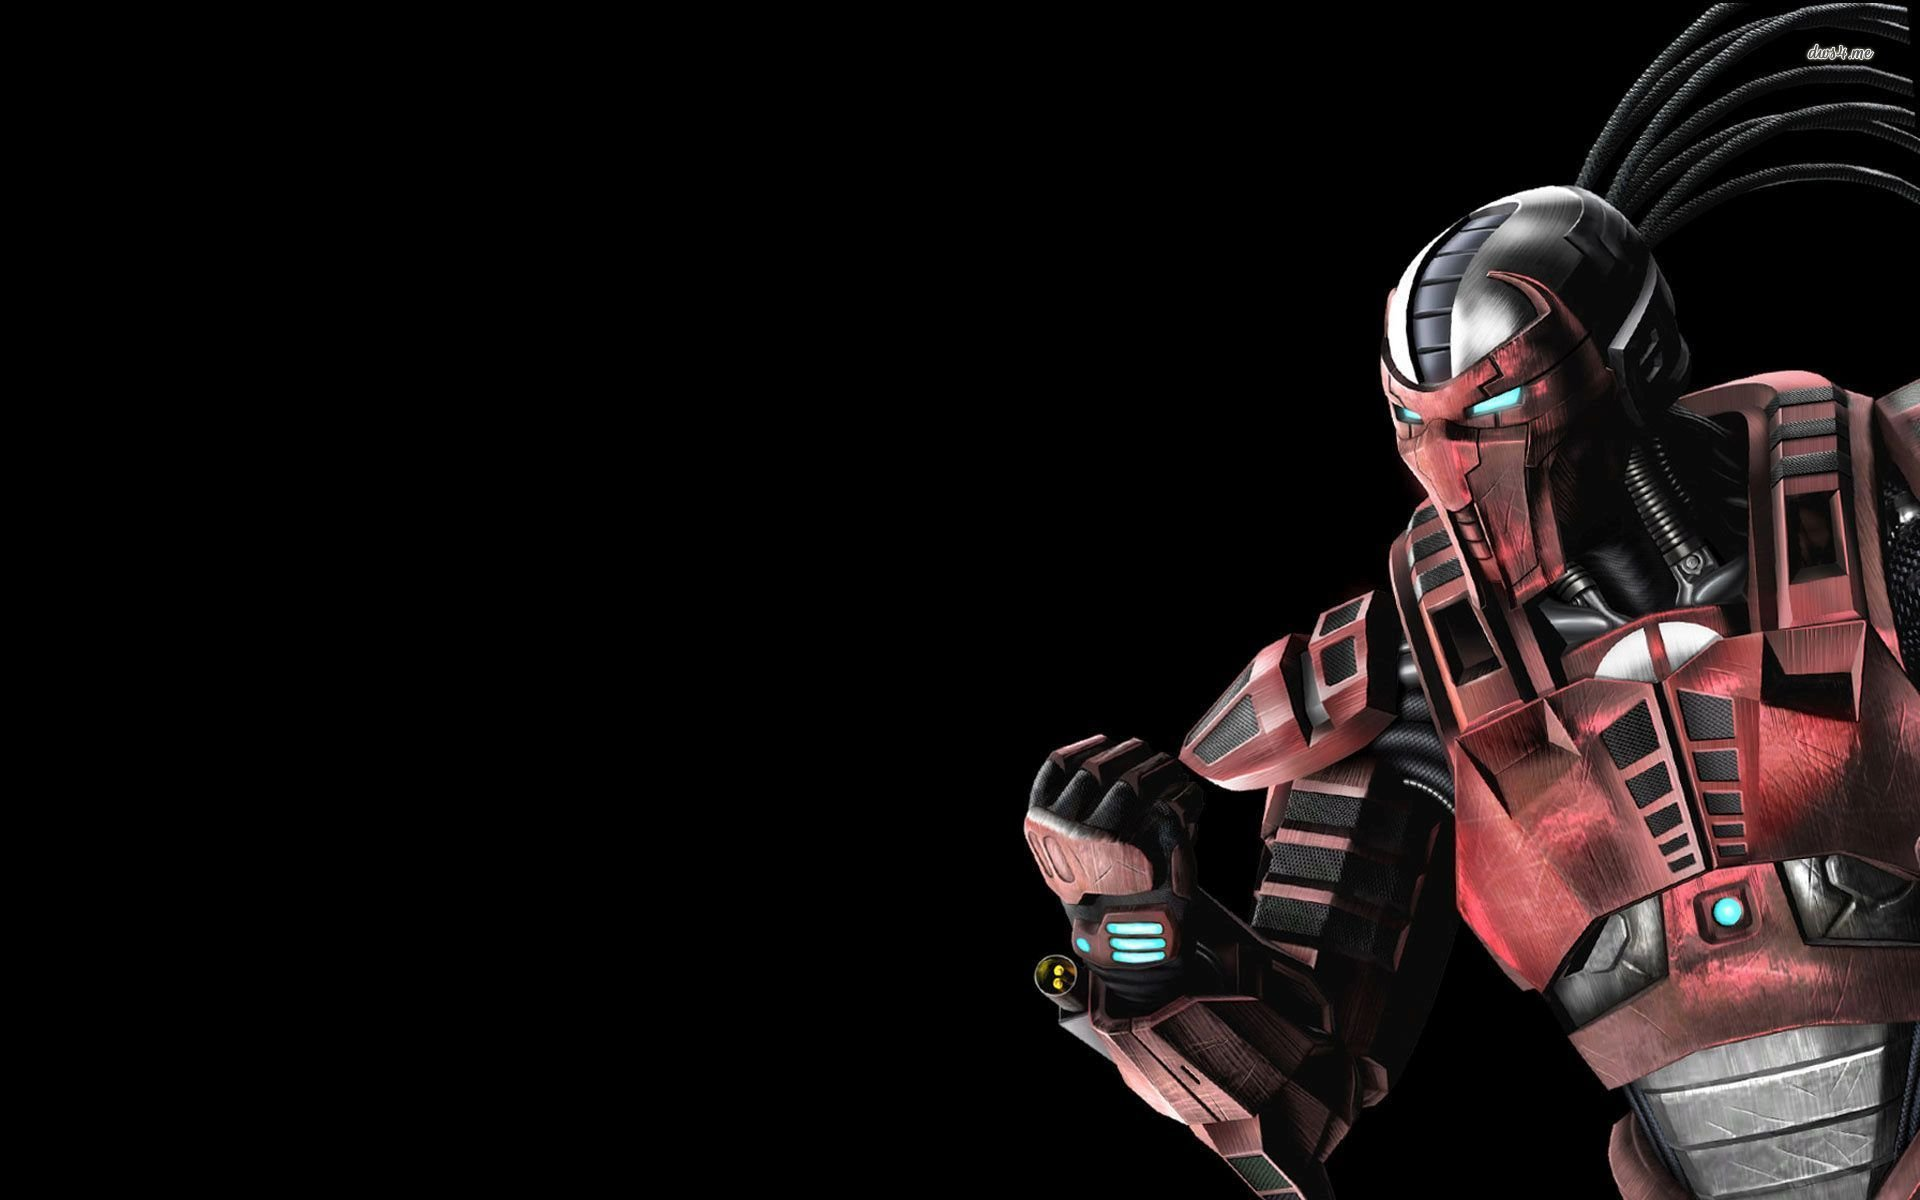 Sektor   Mortal Kombat 9 wallpaper   Game wallpapers   28844 1920x1200